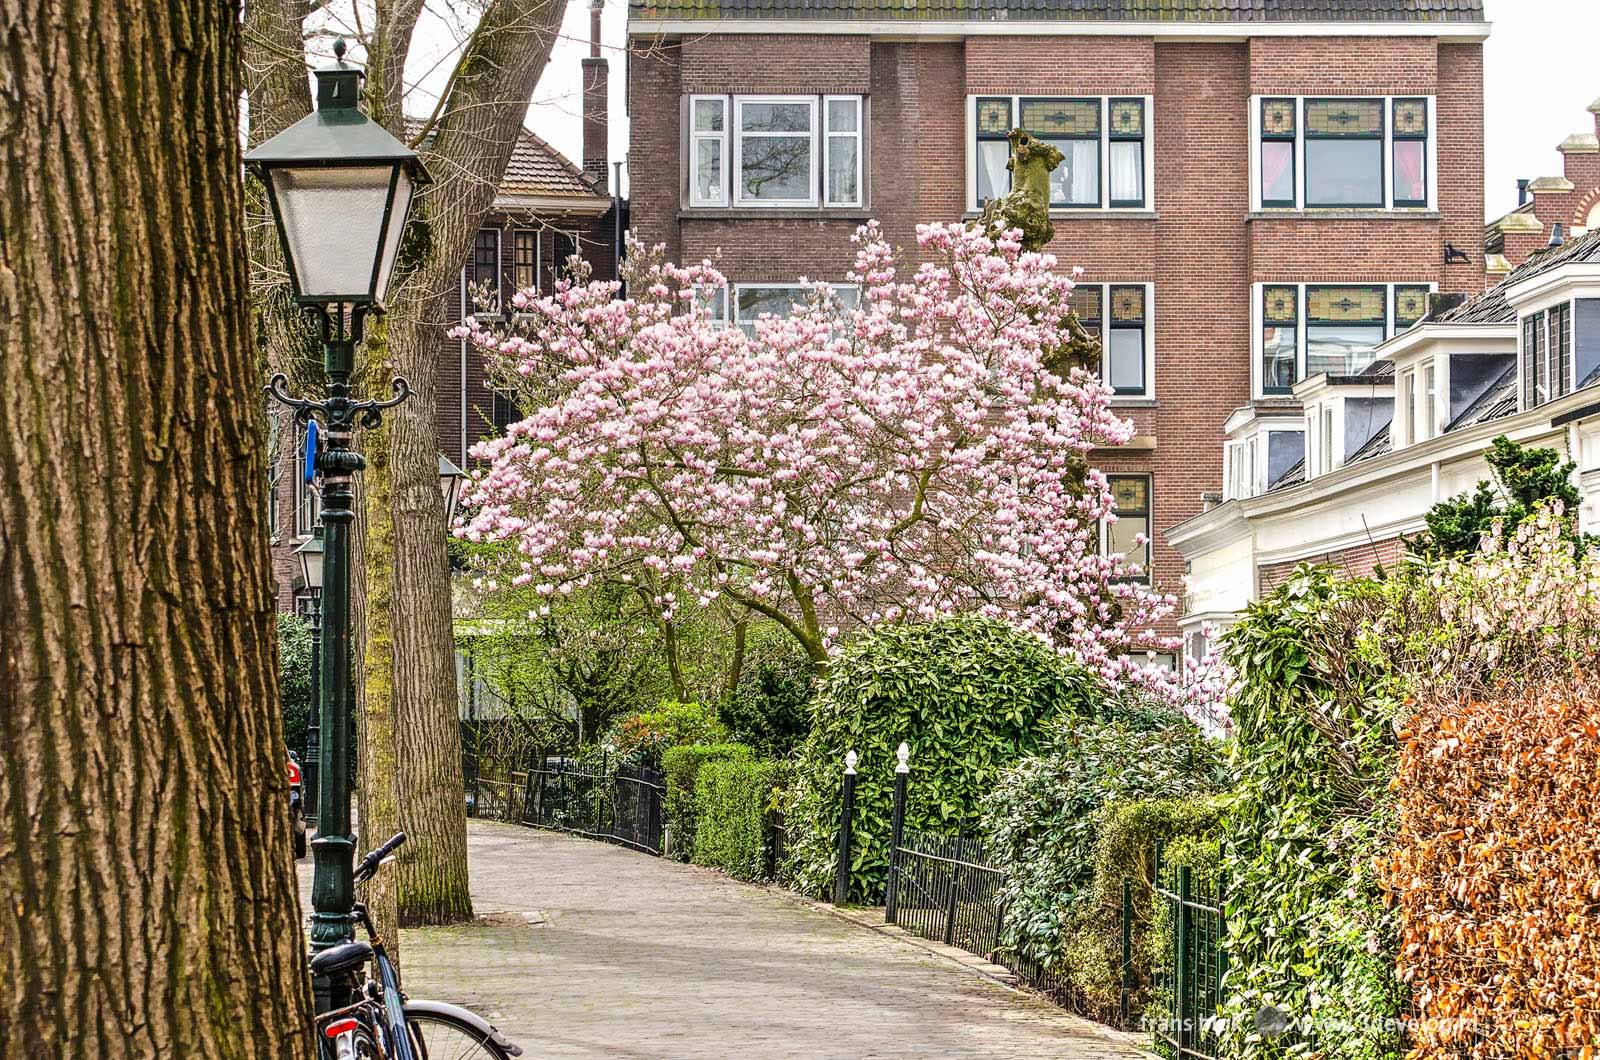 Magnolia tree in bloom in spring in a garden on Hoflaan in Kralingen, Rotterdam